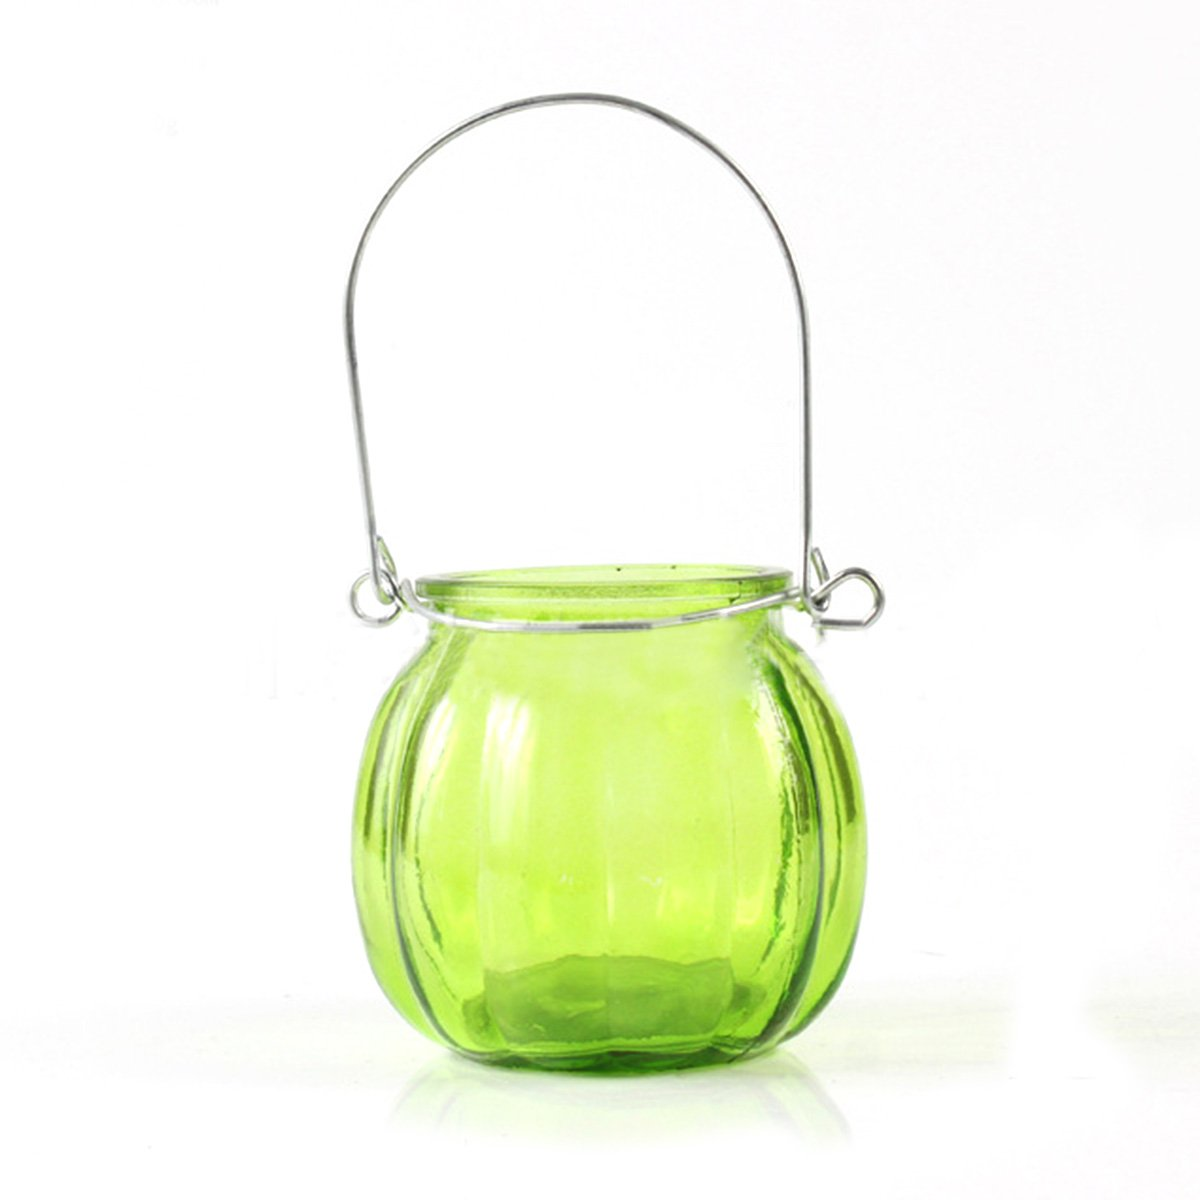 YiZYiF Stainless Steel Wire Handles Night Lamp Flower Candle Holder for Regular Mouth Mason Jar Ball Pint Jar Canning Jars Hanger Silver8 One Size